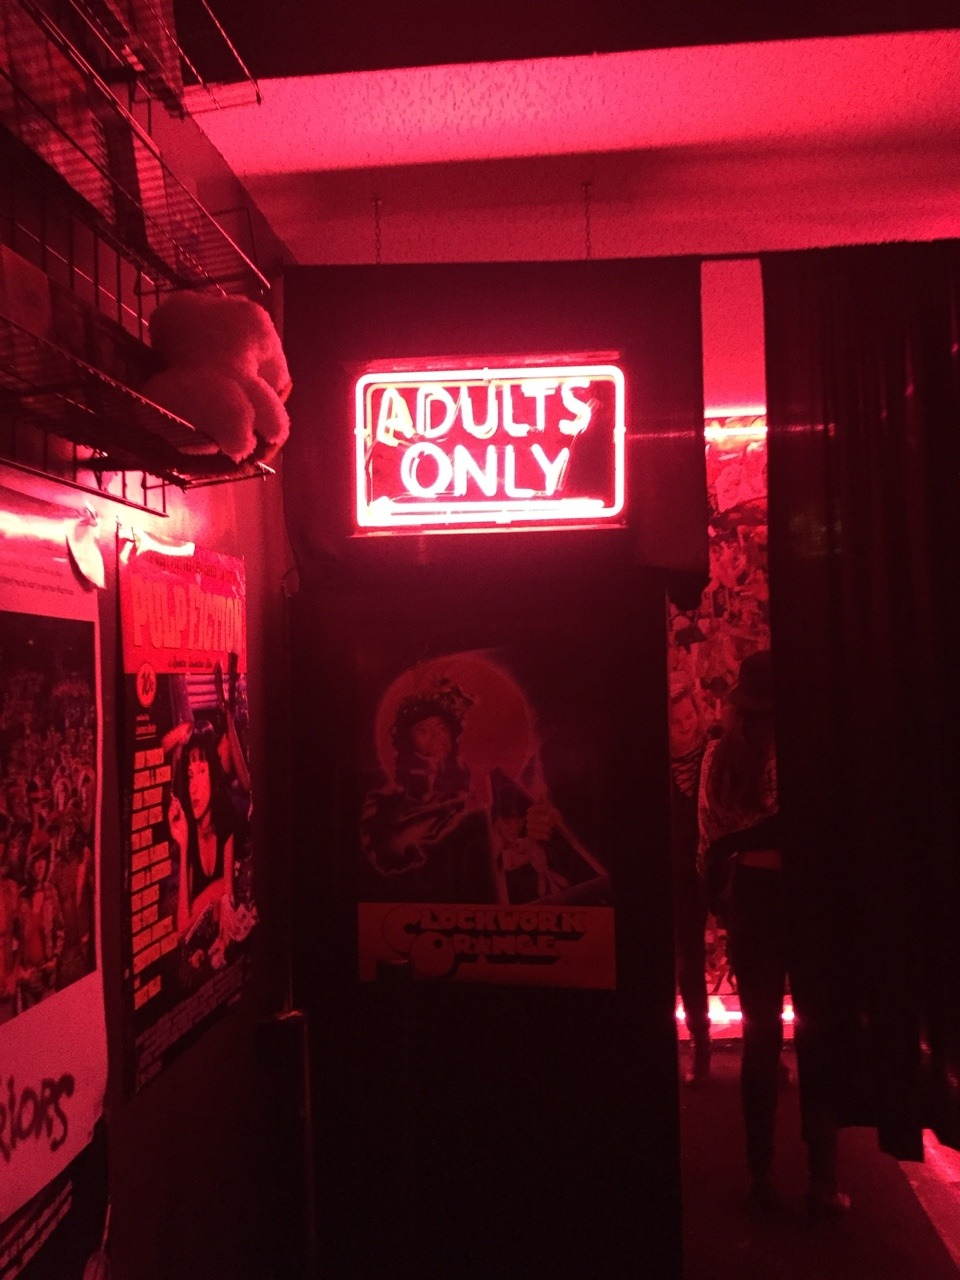 Adults Only….